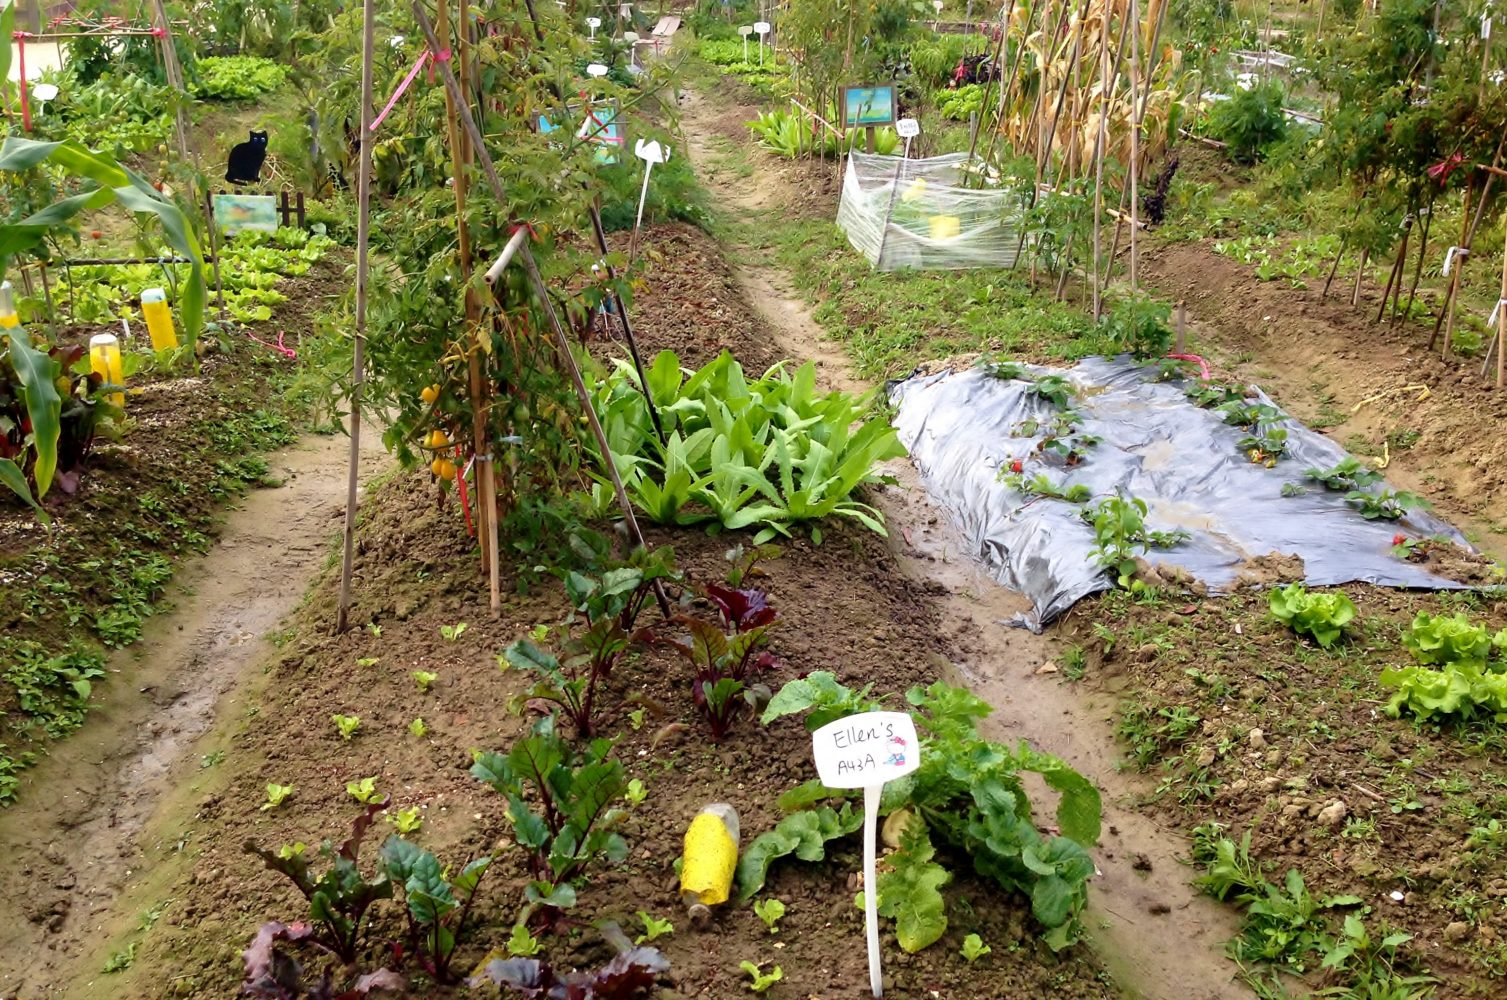 organic farm Connected to main campus by two trails through the campus forest, the organic farm is a working small-scale organic farm that serves as a learning laboratory focused on small-scale organic agriculture.